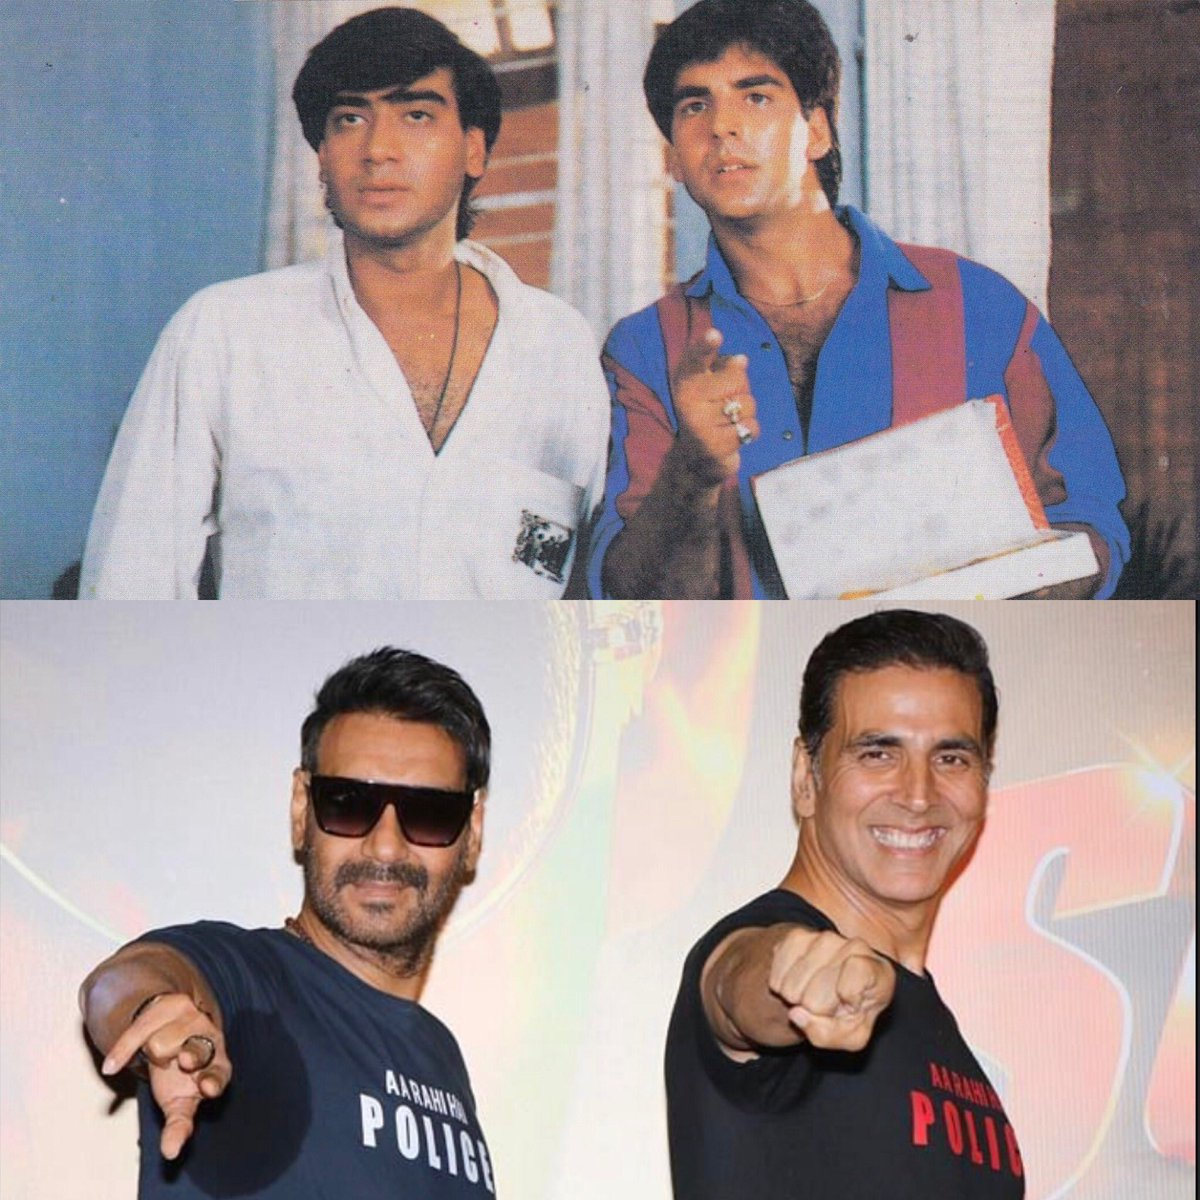 From then to now, you've been an amazing co-star and part of my journey. Wishing you a very happy birthday @ajaydevgn. May you keep growing from strength to strength. Much love 🤗